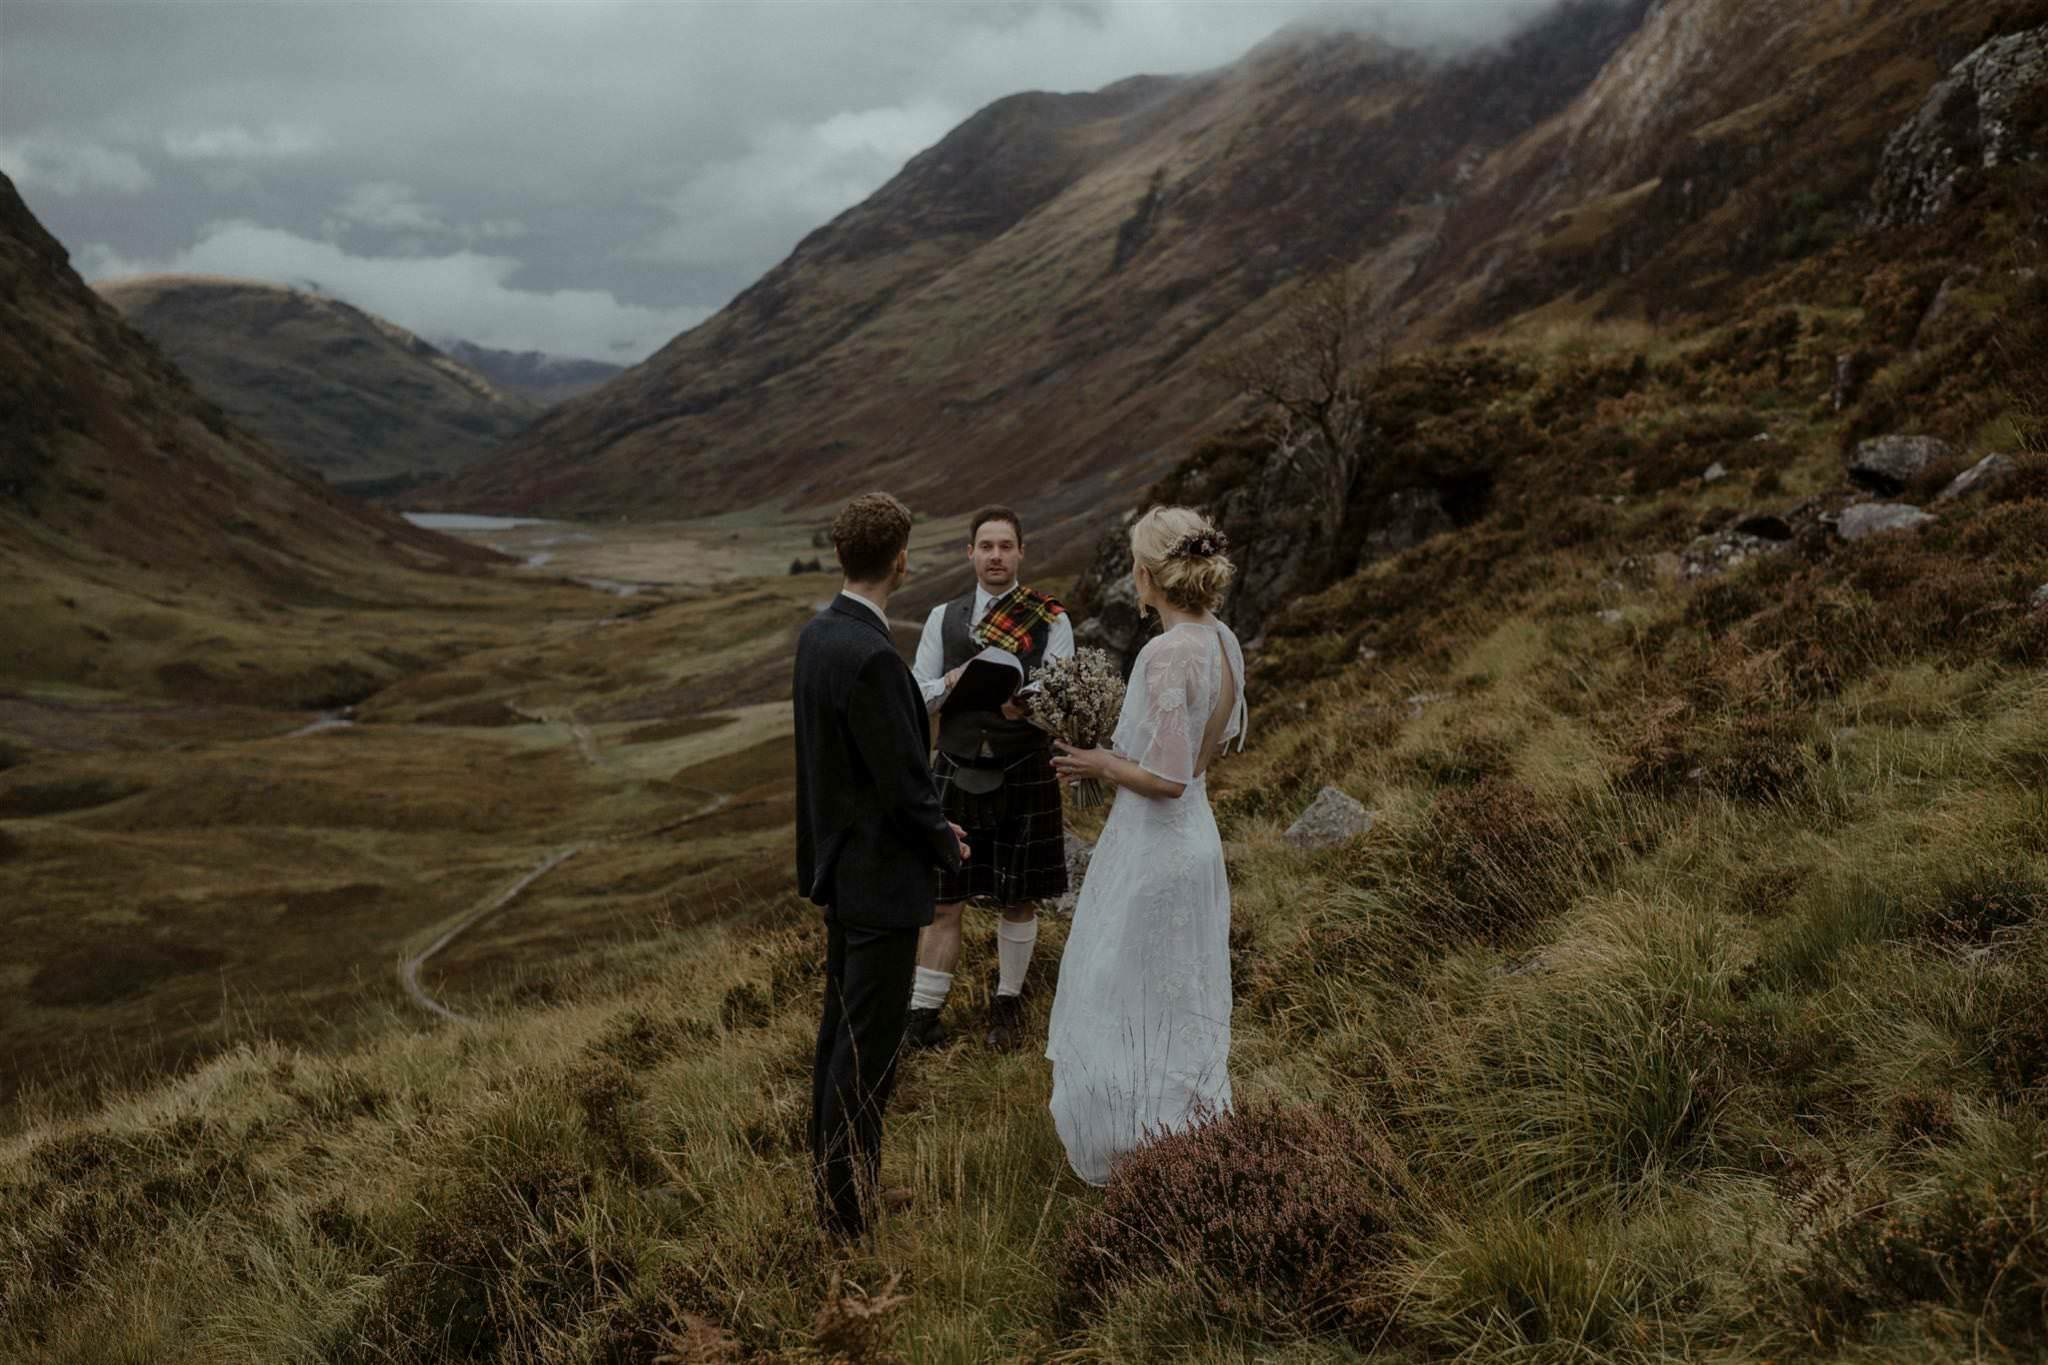 Bride, groom and humanist celebrant during an outdoor elopement wedding ceremony in Glencoe, Scottish Highlands